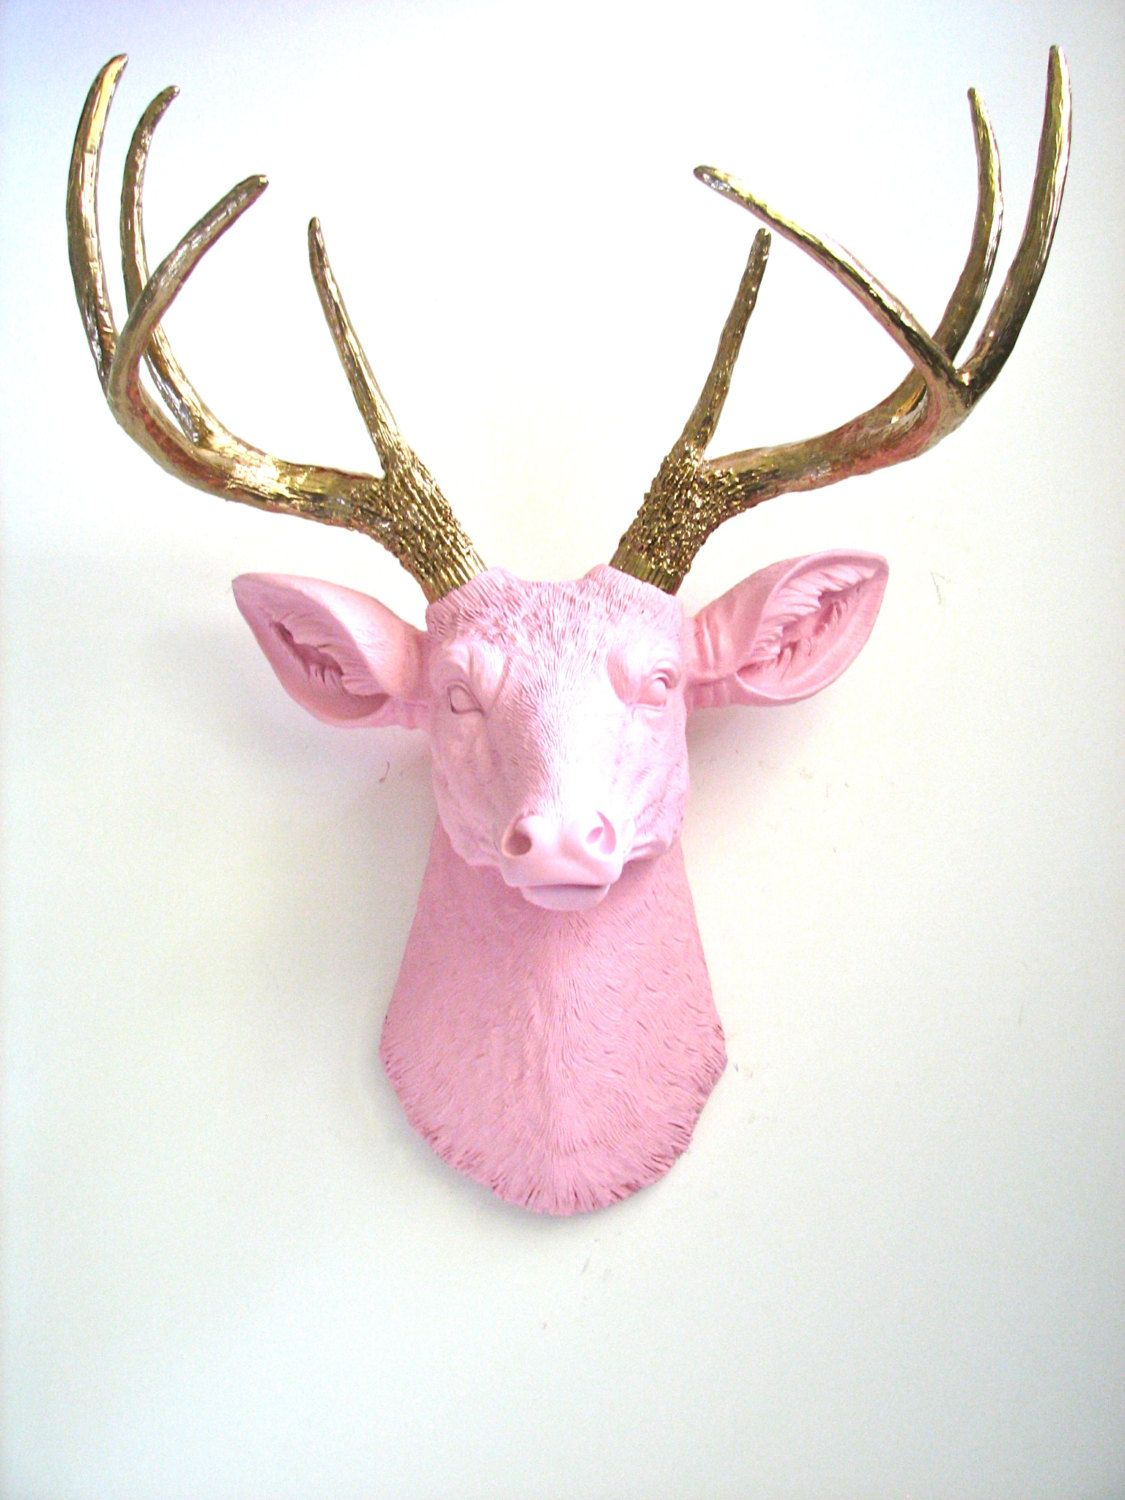 Faux Taxidermy Deer Head Wall Hanging Wall Mount Home Decor with regard to Atlantis Faux Taxidermy Wall Decor (Image 10 of 30)